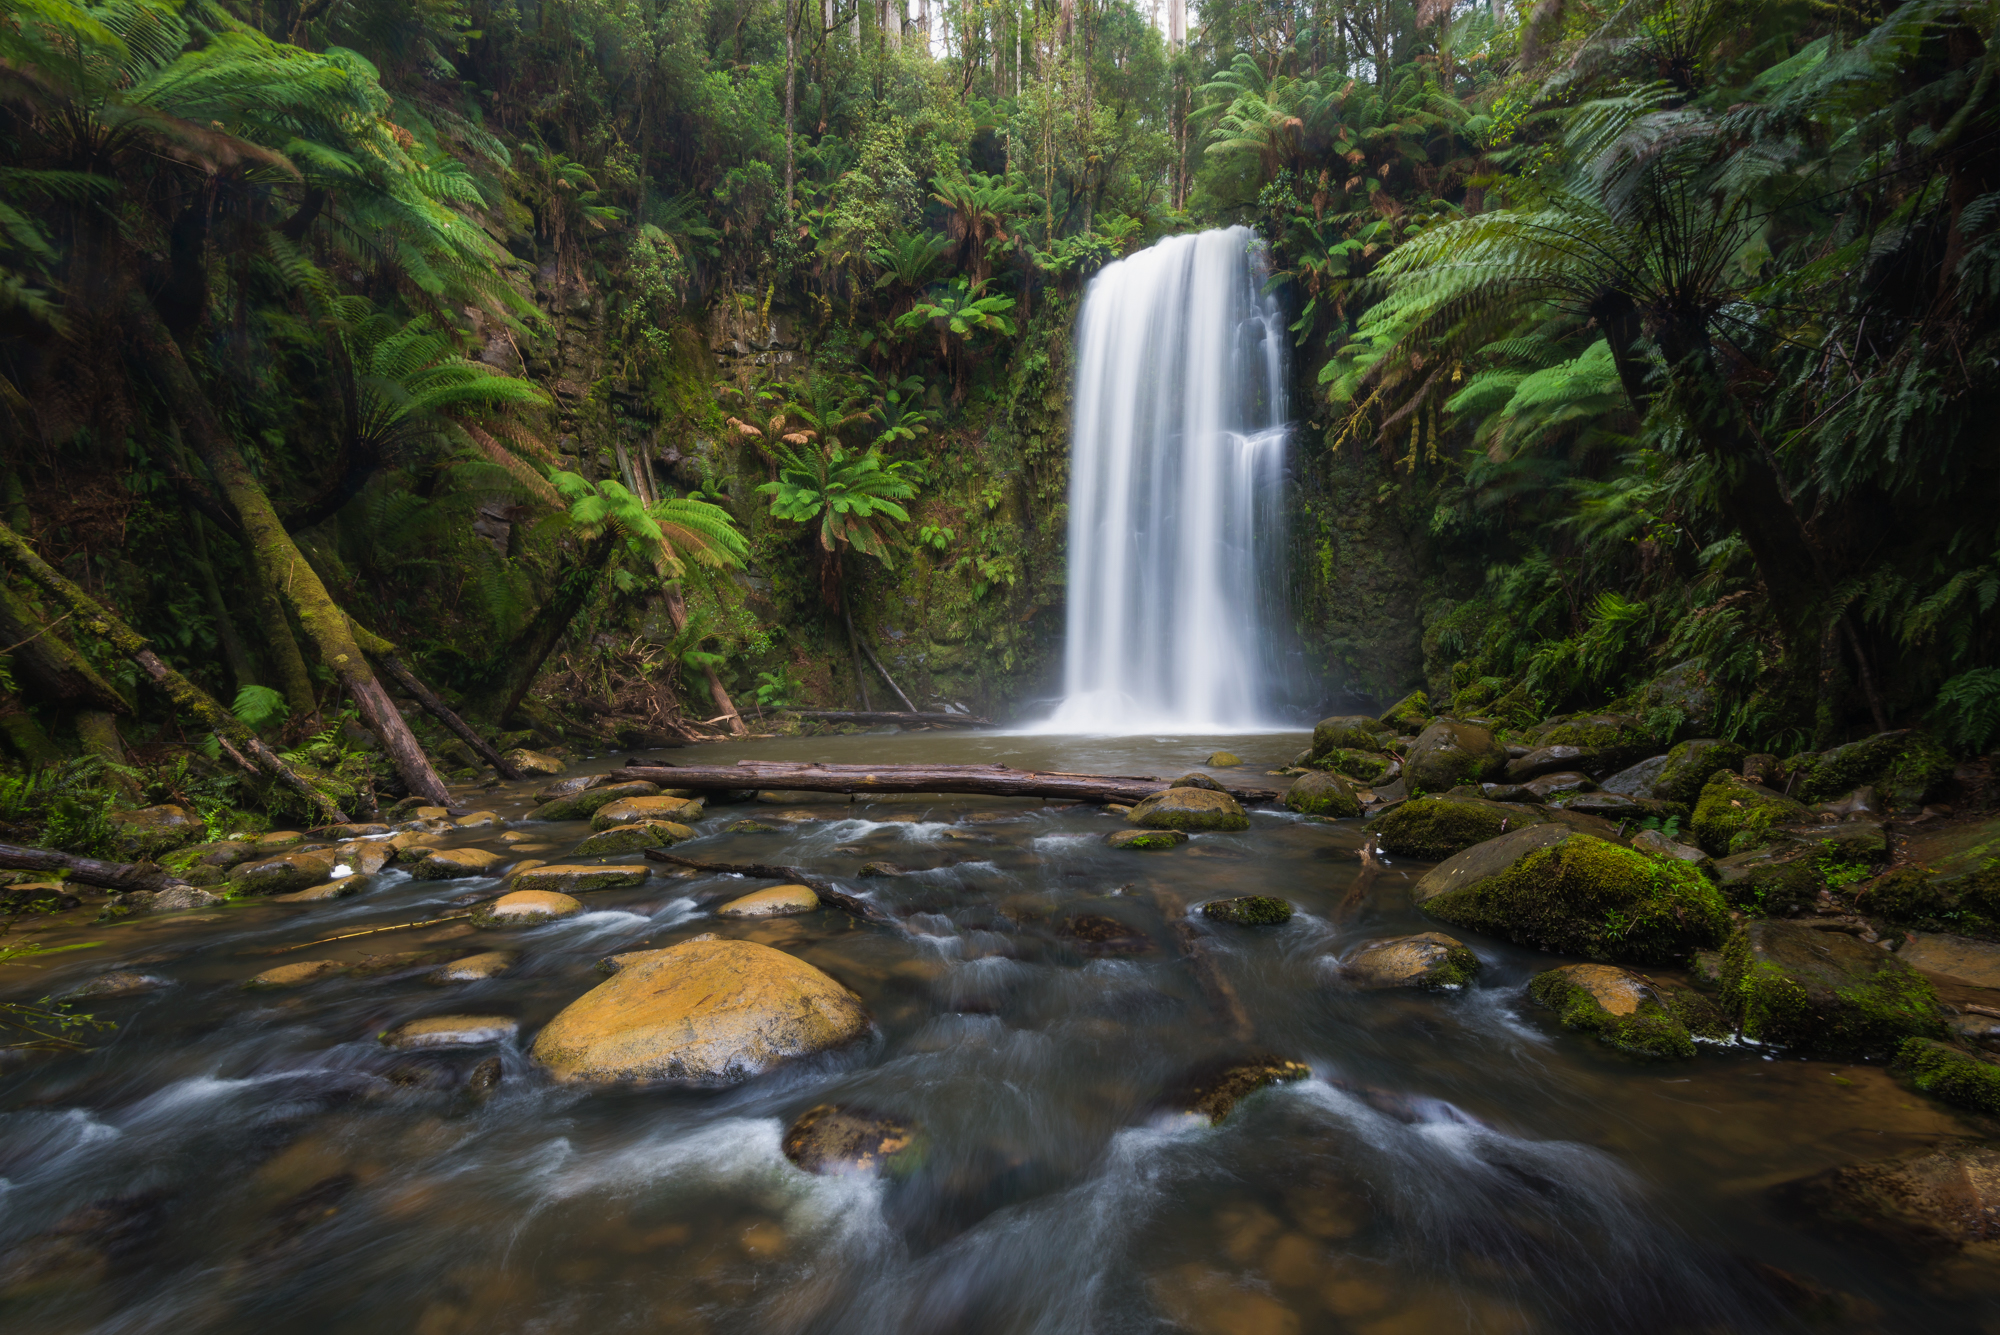 Just off the main track: Beauchamp Falls - Nikon D800 @ ISO 100 | f/16 | 16mm | 1/8 sec